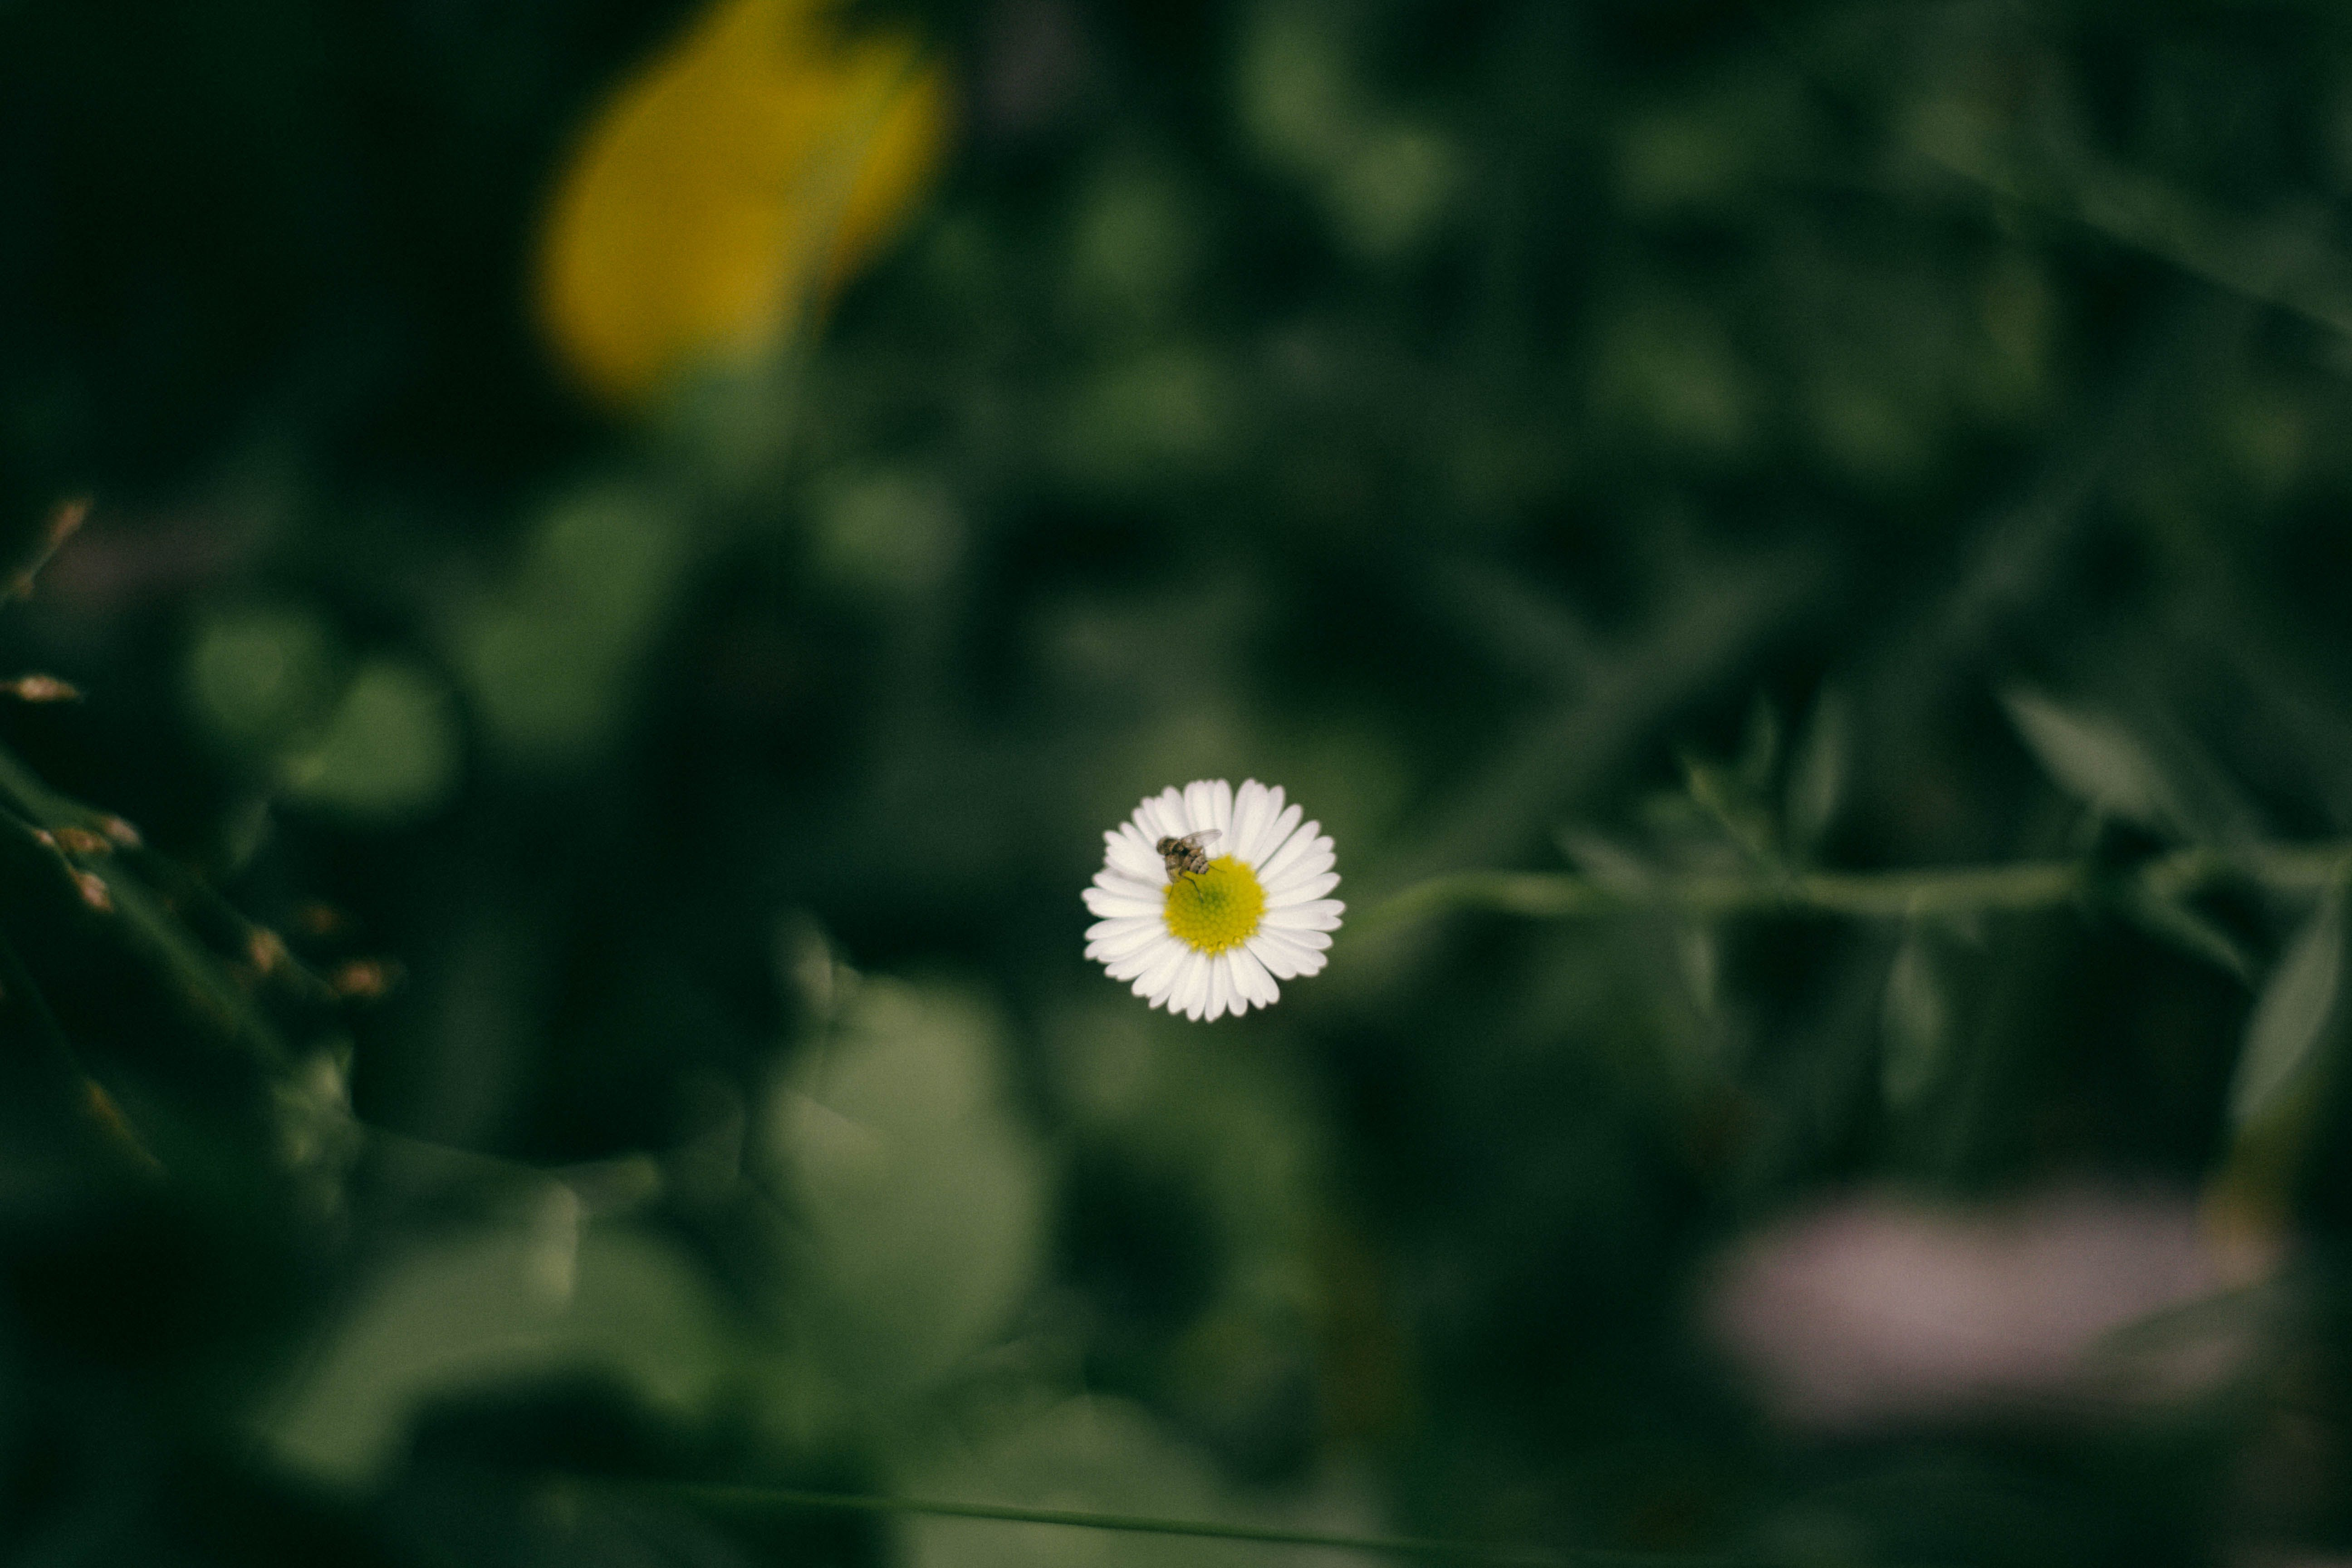 Free stock photo of beautiful flowers, beauty in nature, natural, nature life